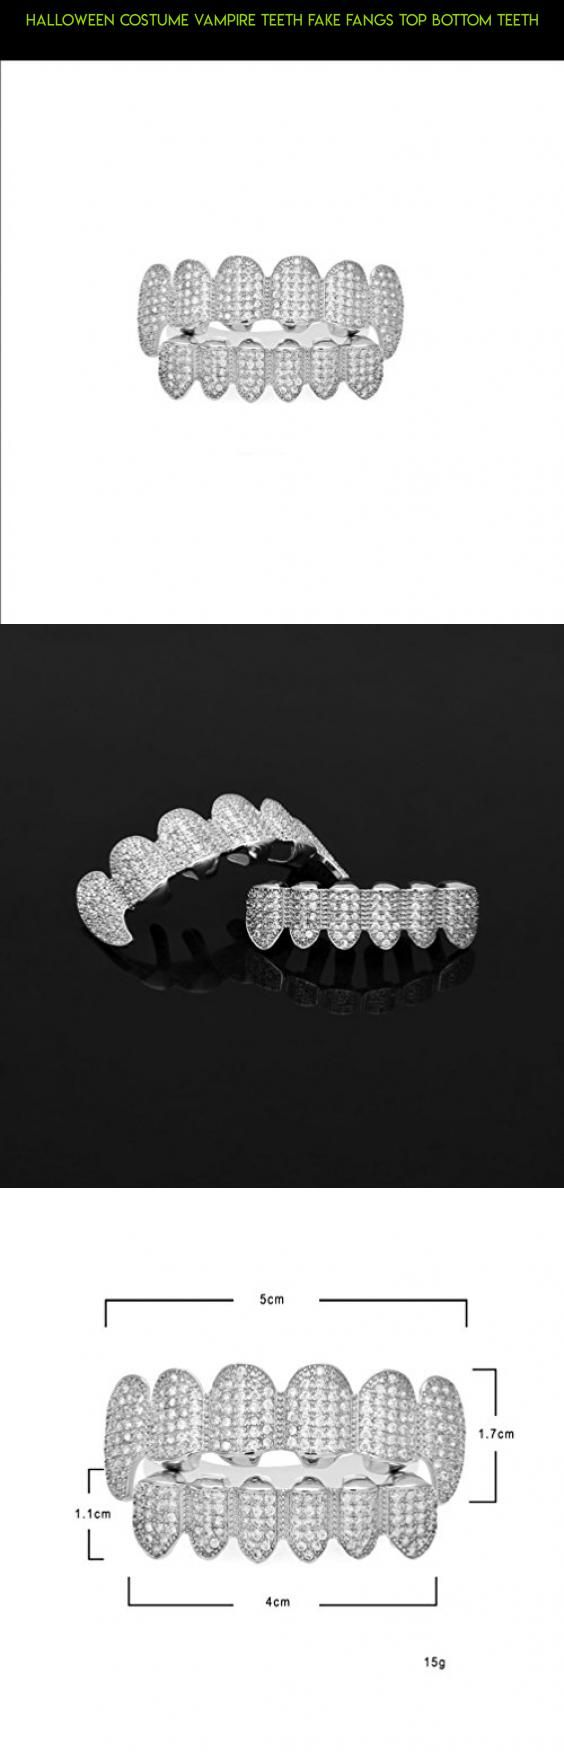 Halloween Costume Vampire Teeth Fake Fangs Top Bottom Teeth #tech #parts #shopping #camera #dripping #products #plans #technology #grills #fpv #kit #drone #gadgets #racing